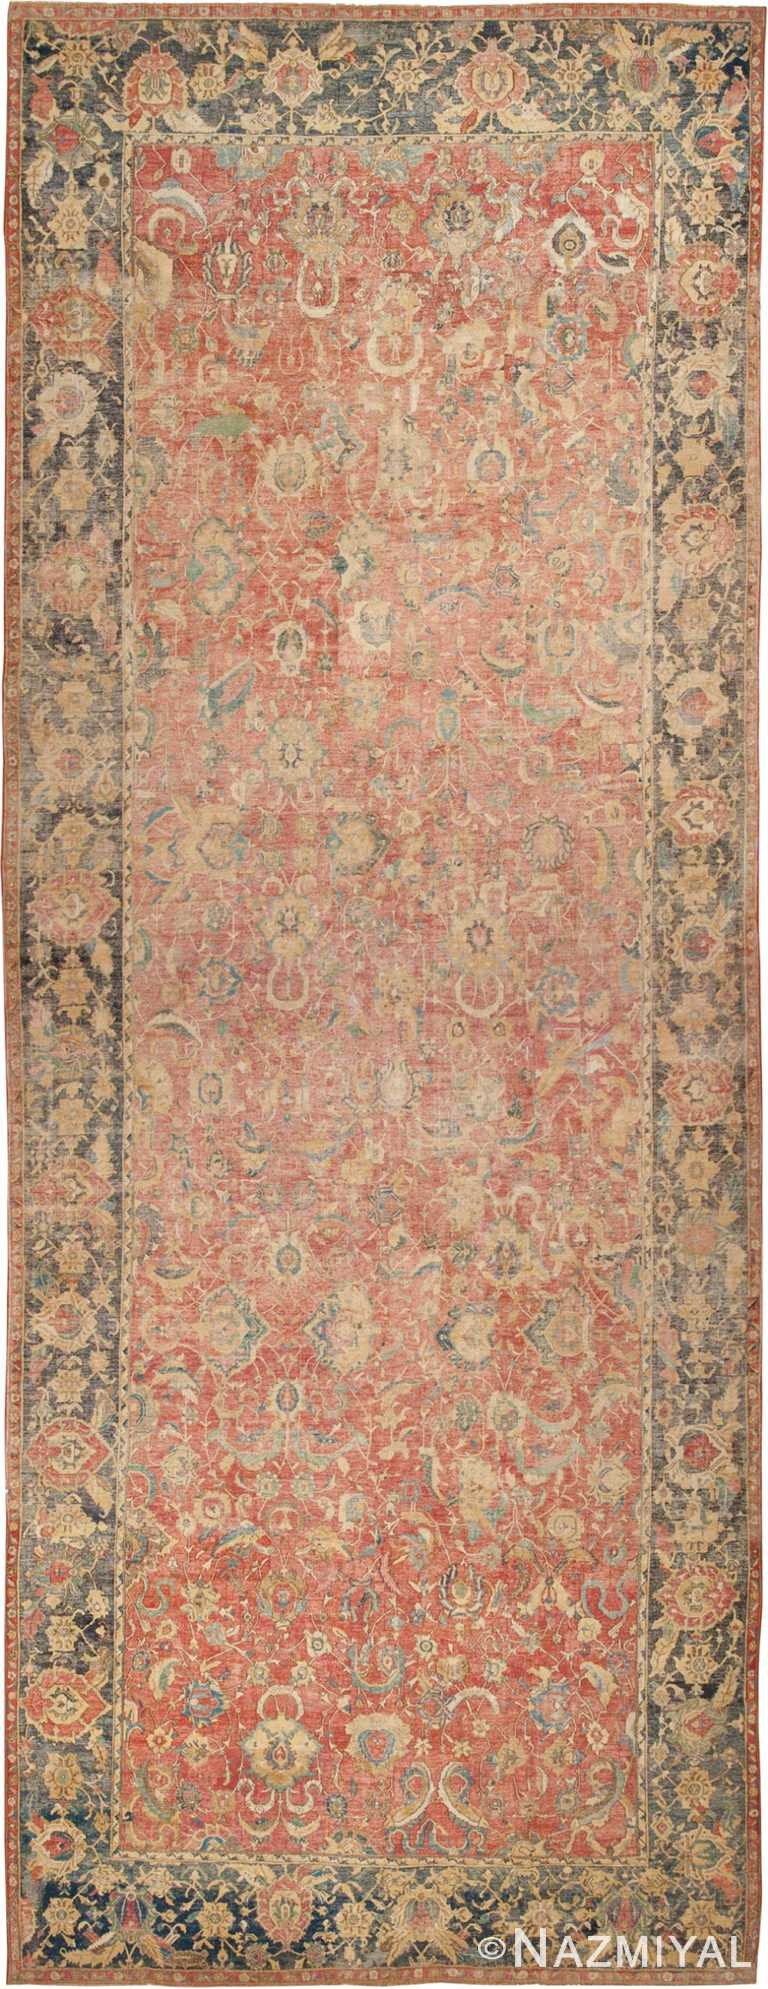 Oversized Antique 17th Century Persian Esfahan Oriental Rug #44143 by Nazmiyal Antique Rugs